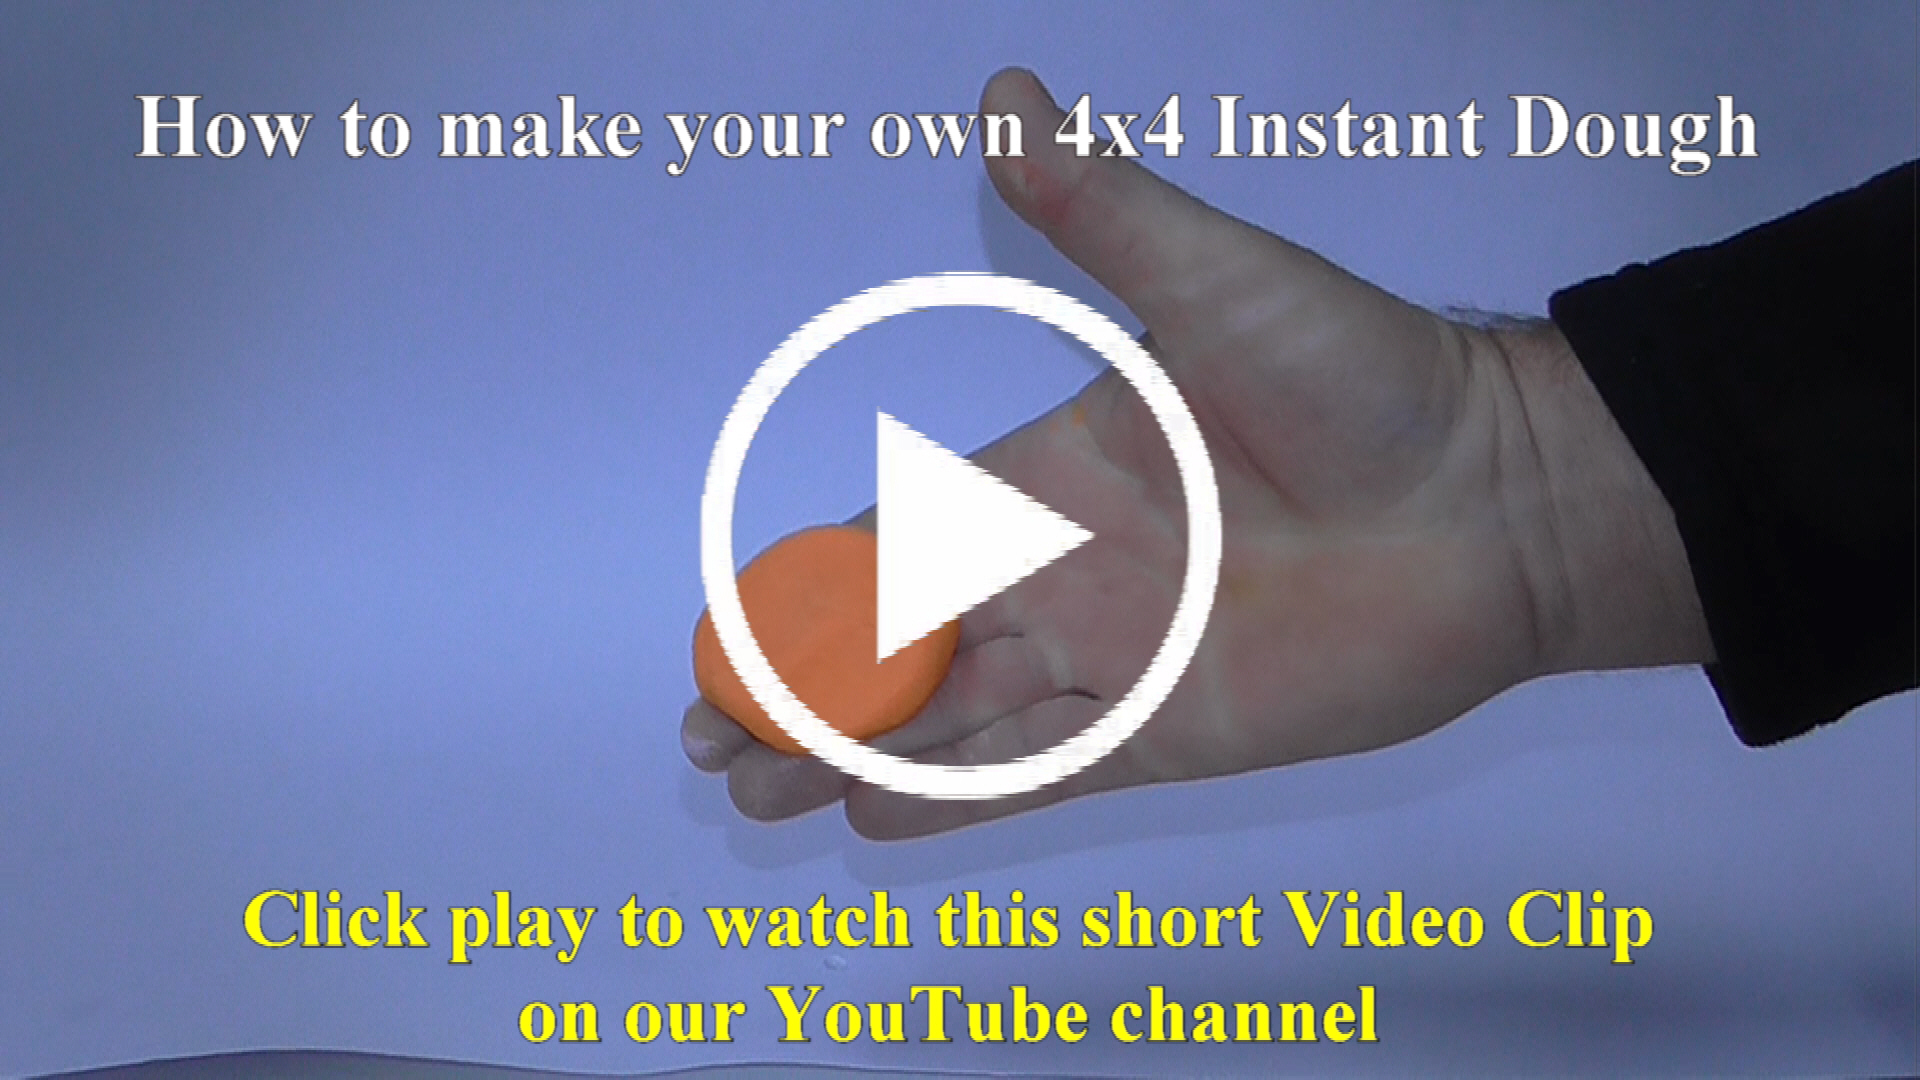 How to make your own 4x4 instant dough Thumbnail